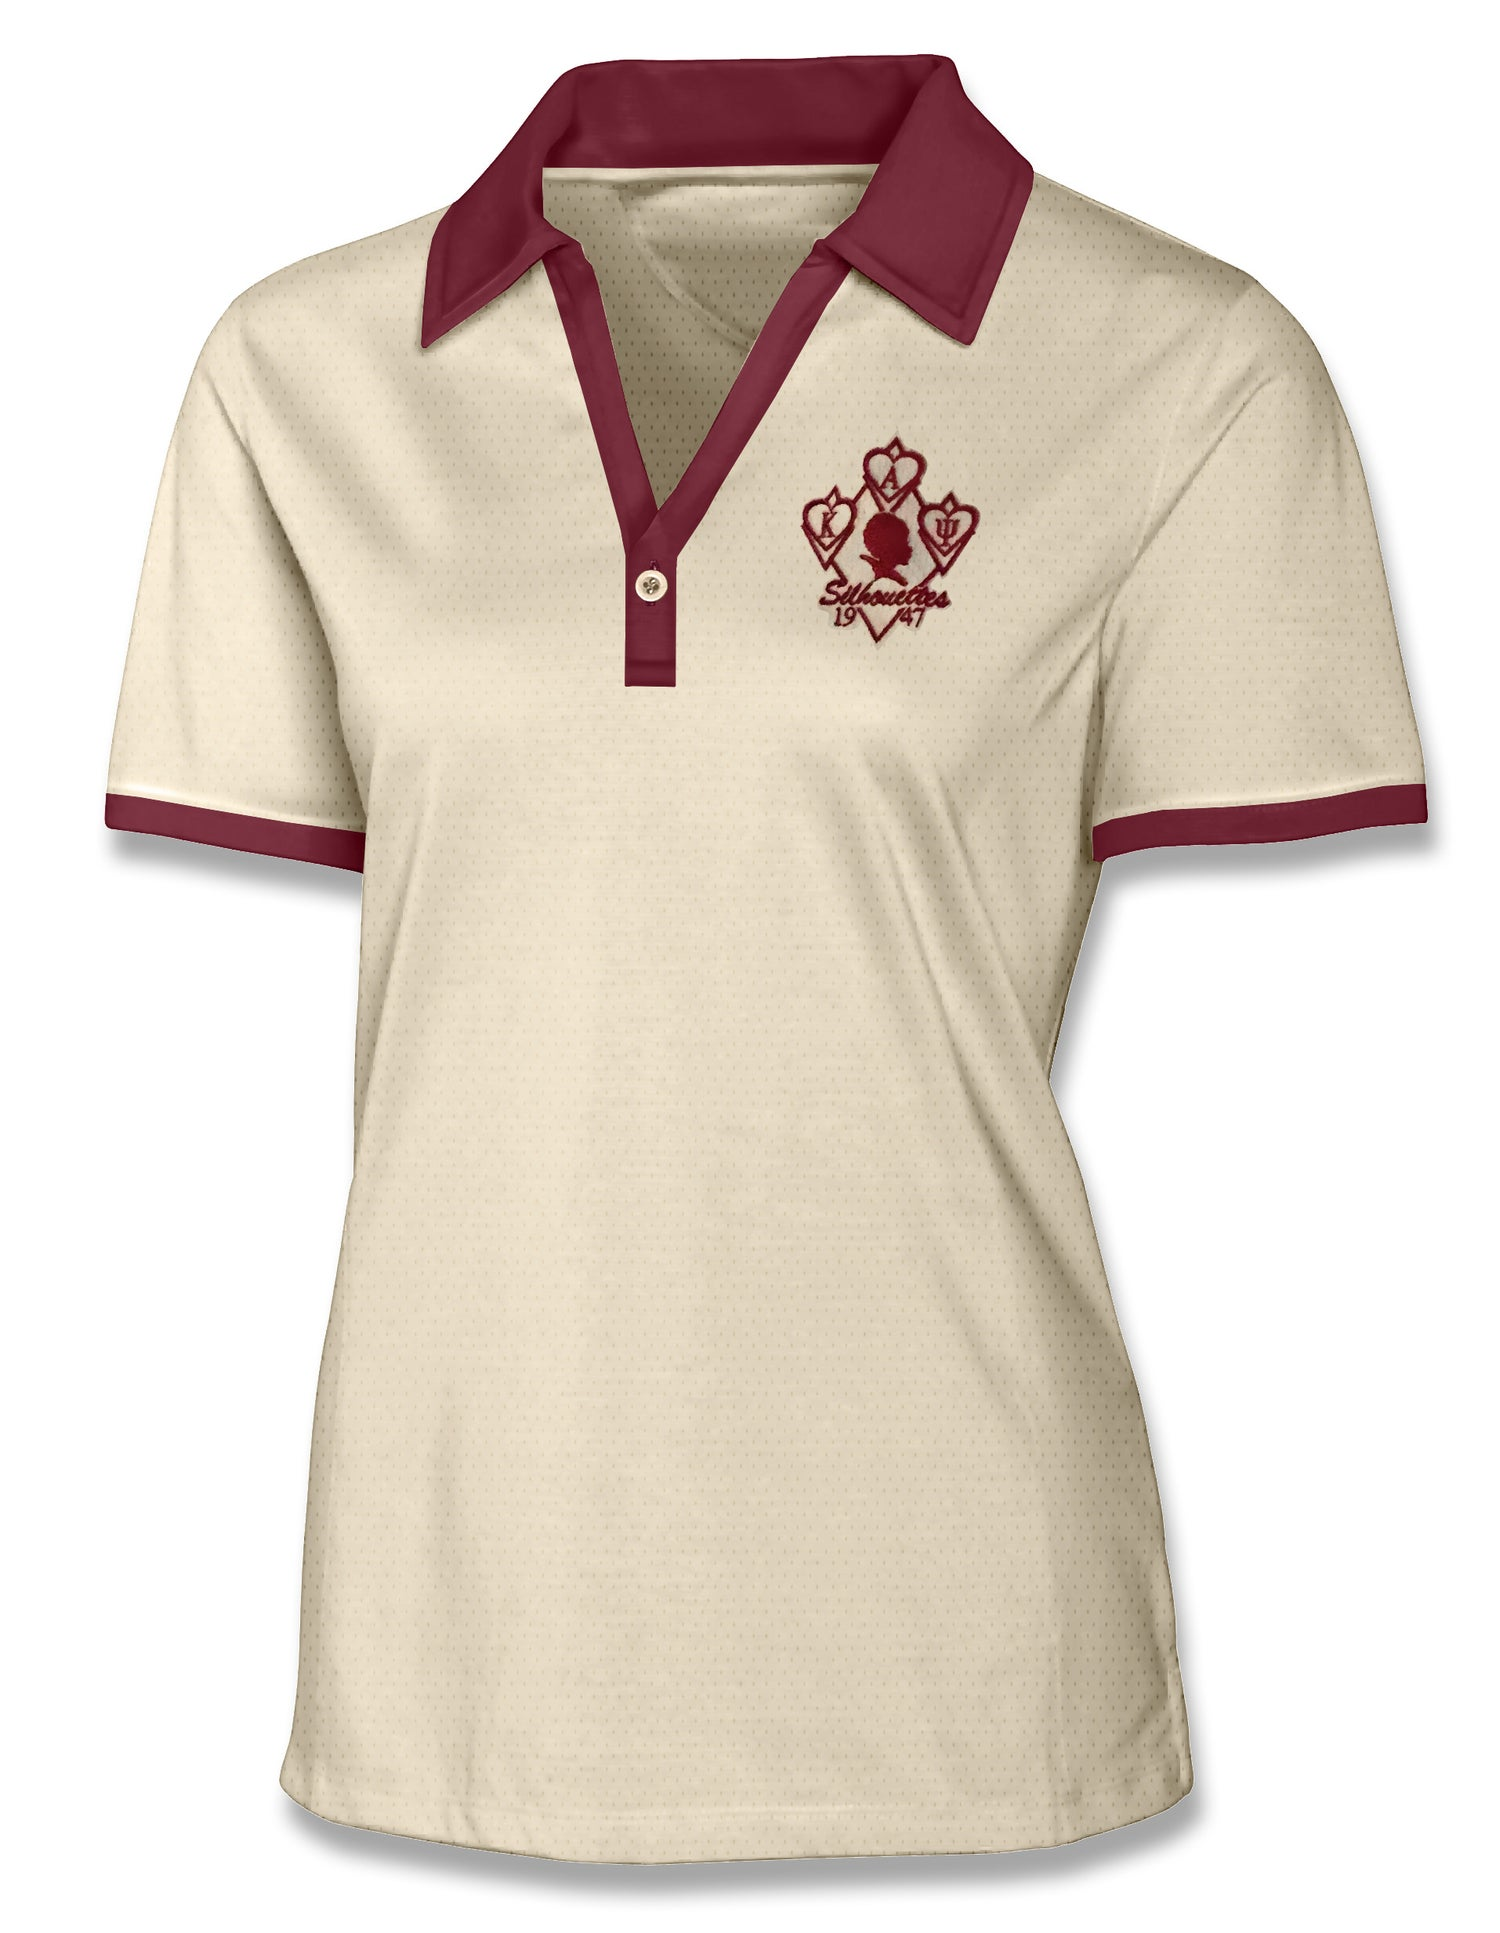 Image of Silhouette Moisture Wicking One Button Golf Polo (Cream w/Crimson Accents)